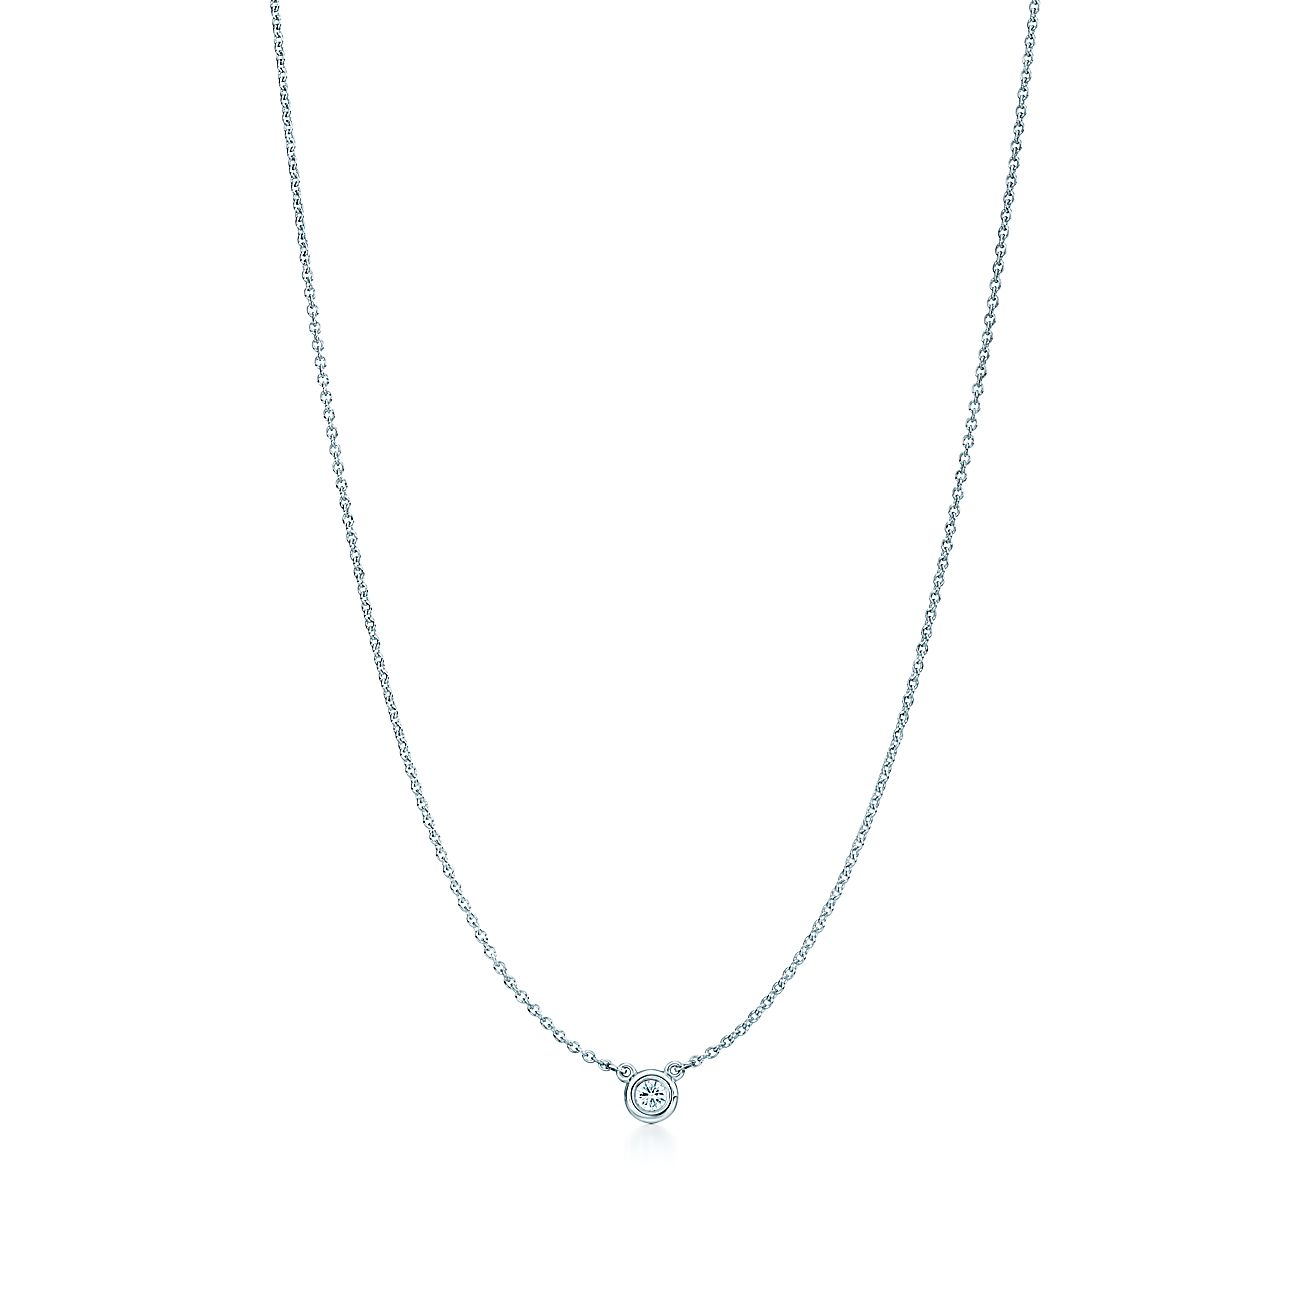 and spirit pendant chopard on happy chain image necklaces diamond pendants